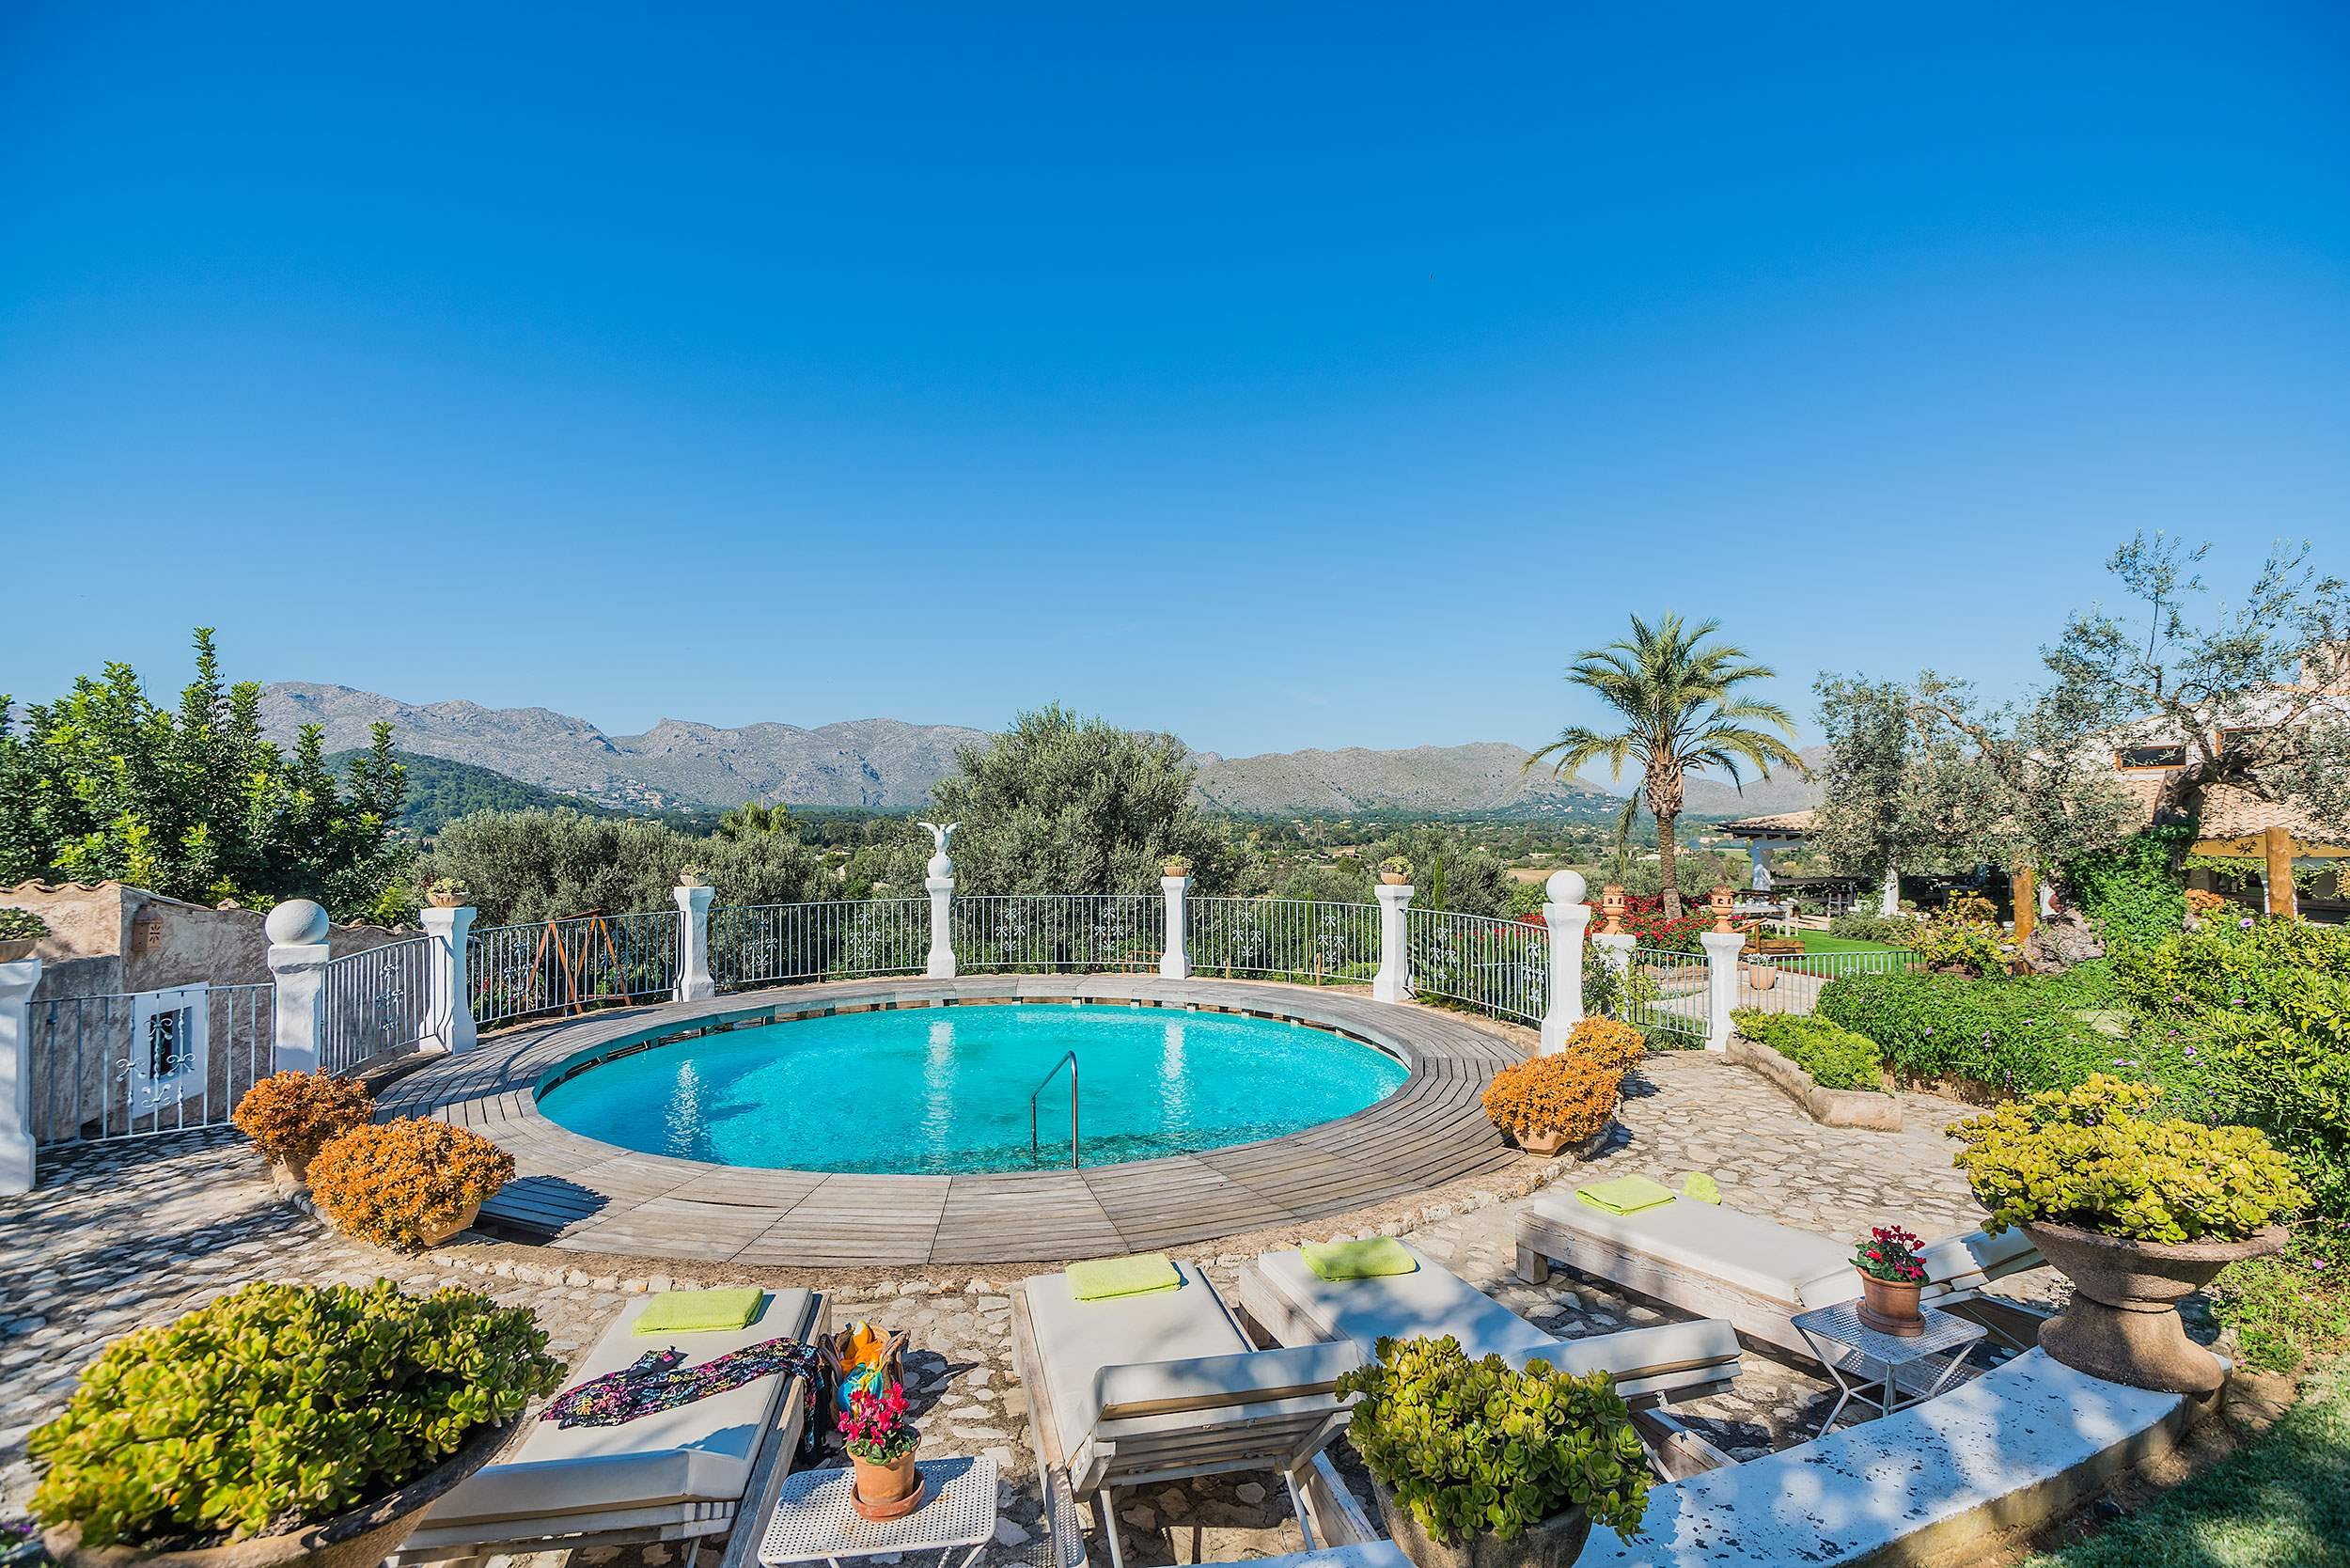 La Rota, 9 - 12 persons, 6 bedroom villa in Pollensa & Puerto Pollensa , Majorca Photo #1